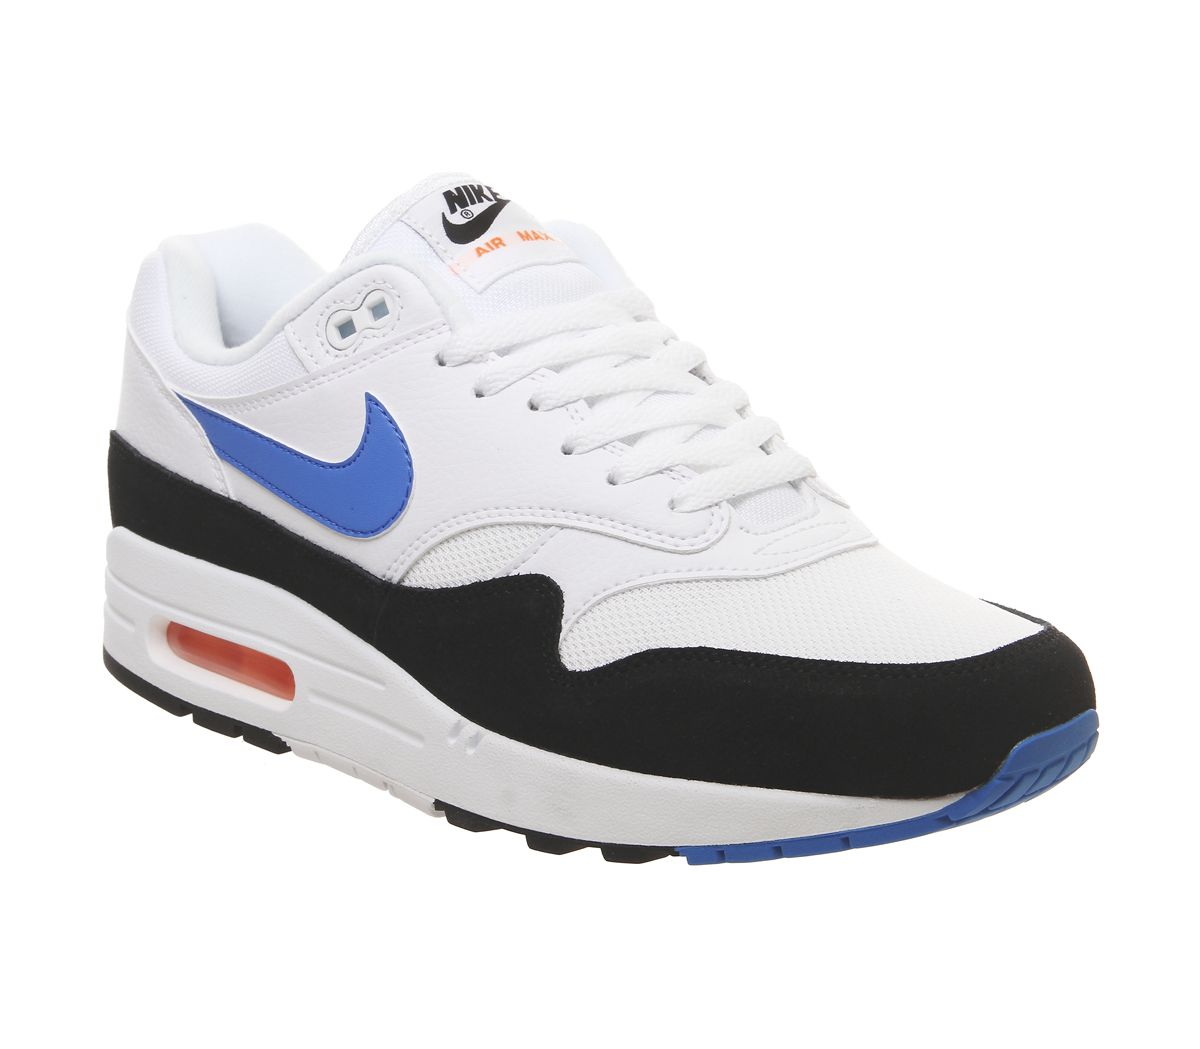 outlet store 6ad6f c3122 Nike Air Max 1 Trainers White Photo Blue Total Orange Black - His ...